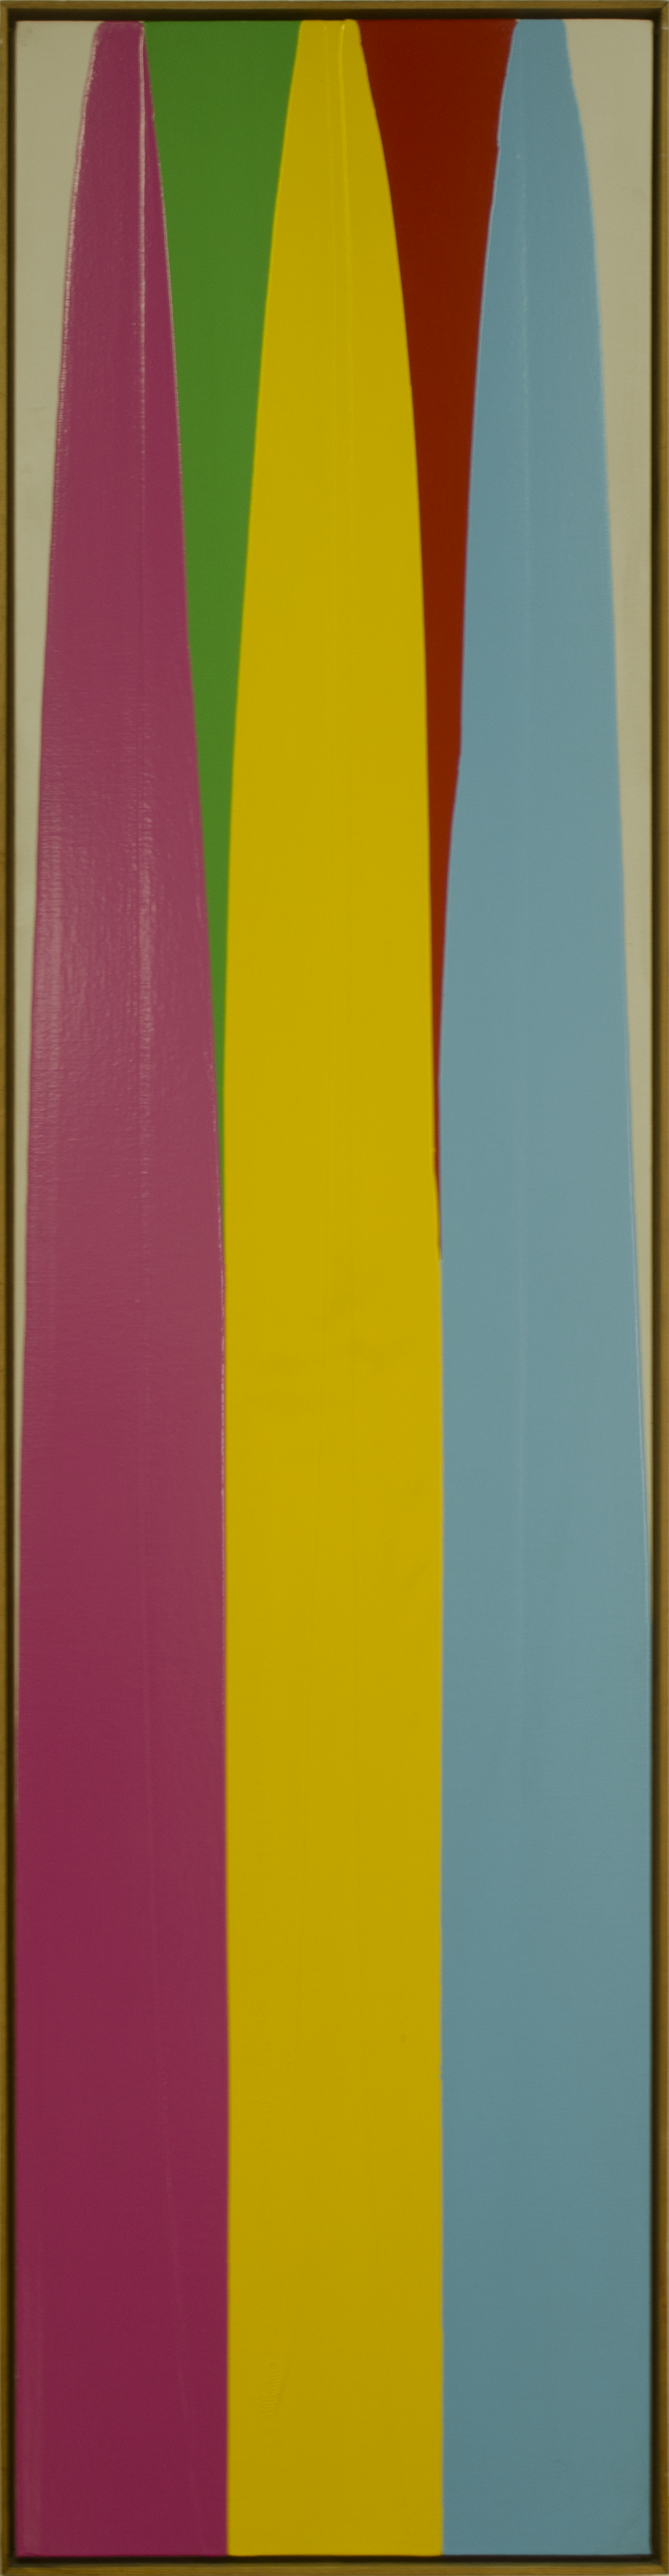 POUR- MAGENTA GREEN YELLOW RED CYAN1974 © acrylic paint on primed canvas